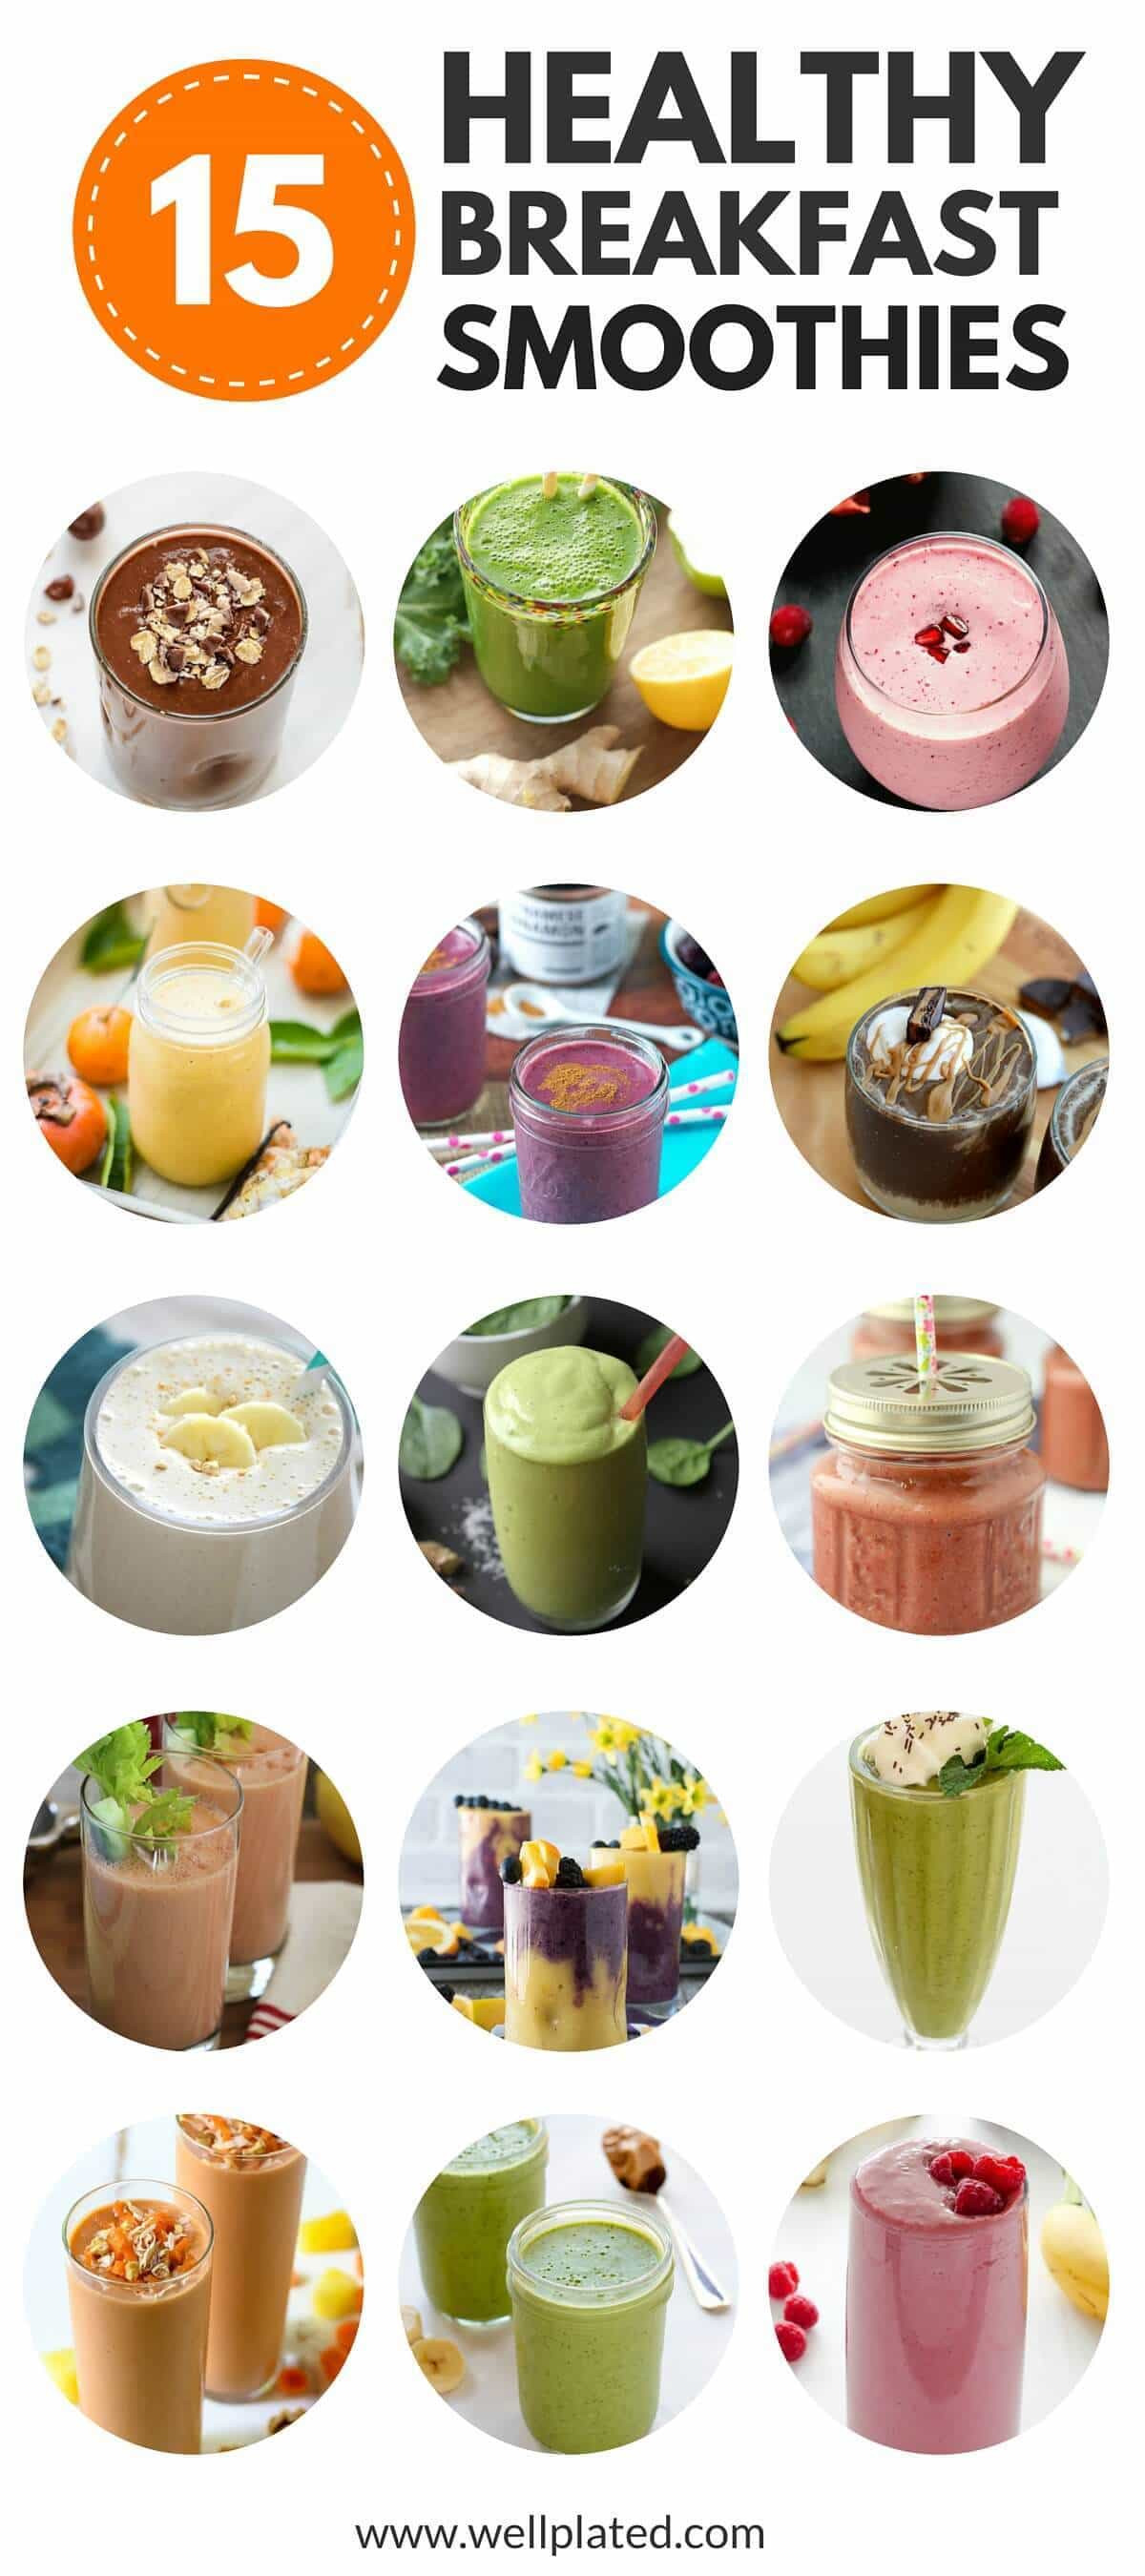 Healthy Smoothie Recipes for Breakfast 20 Best Ideas the Best 15 Healthy Breakfast Smoothies